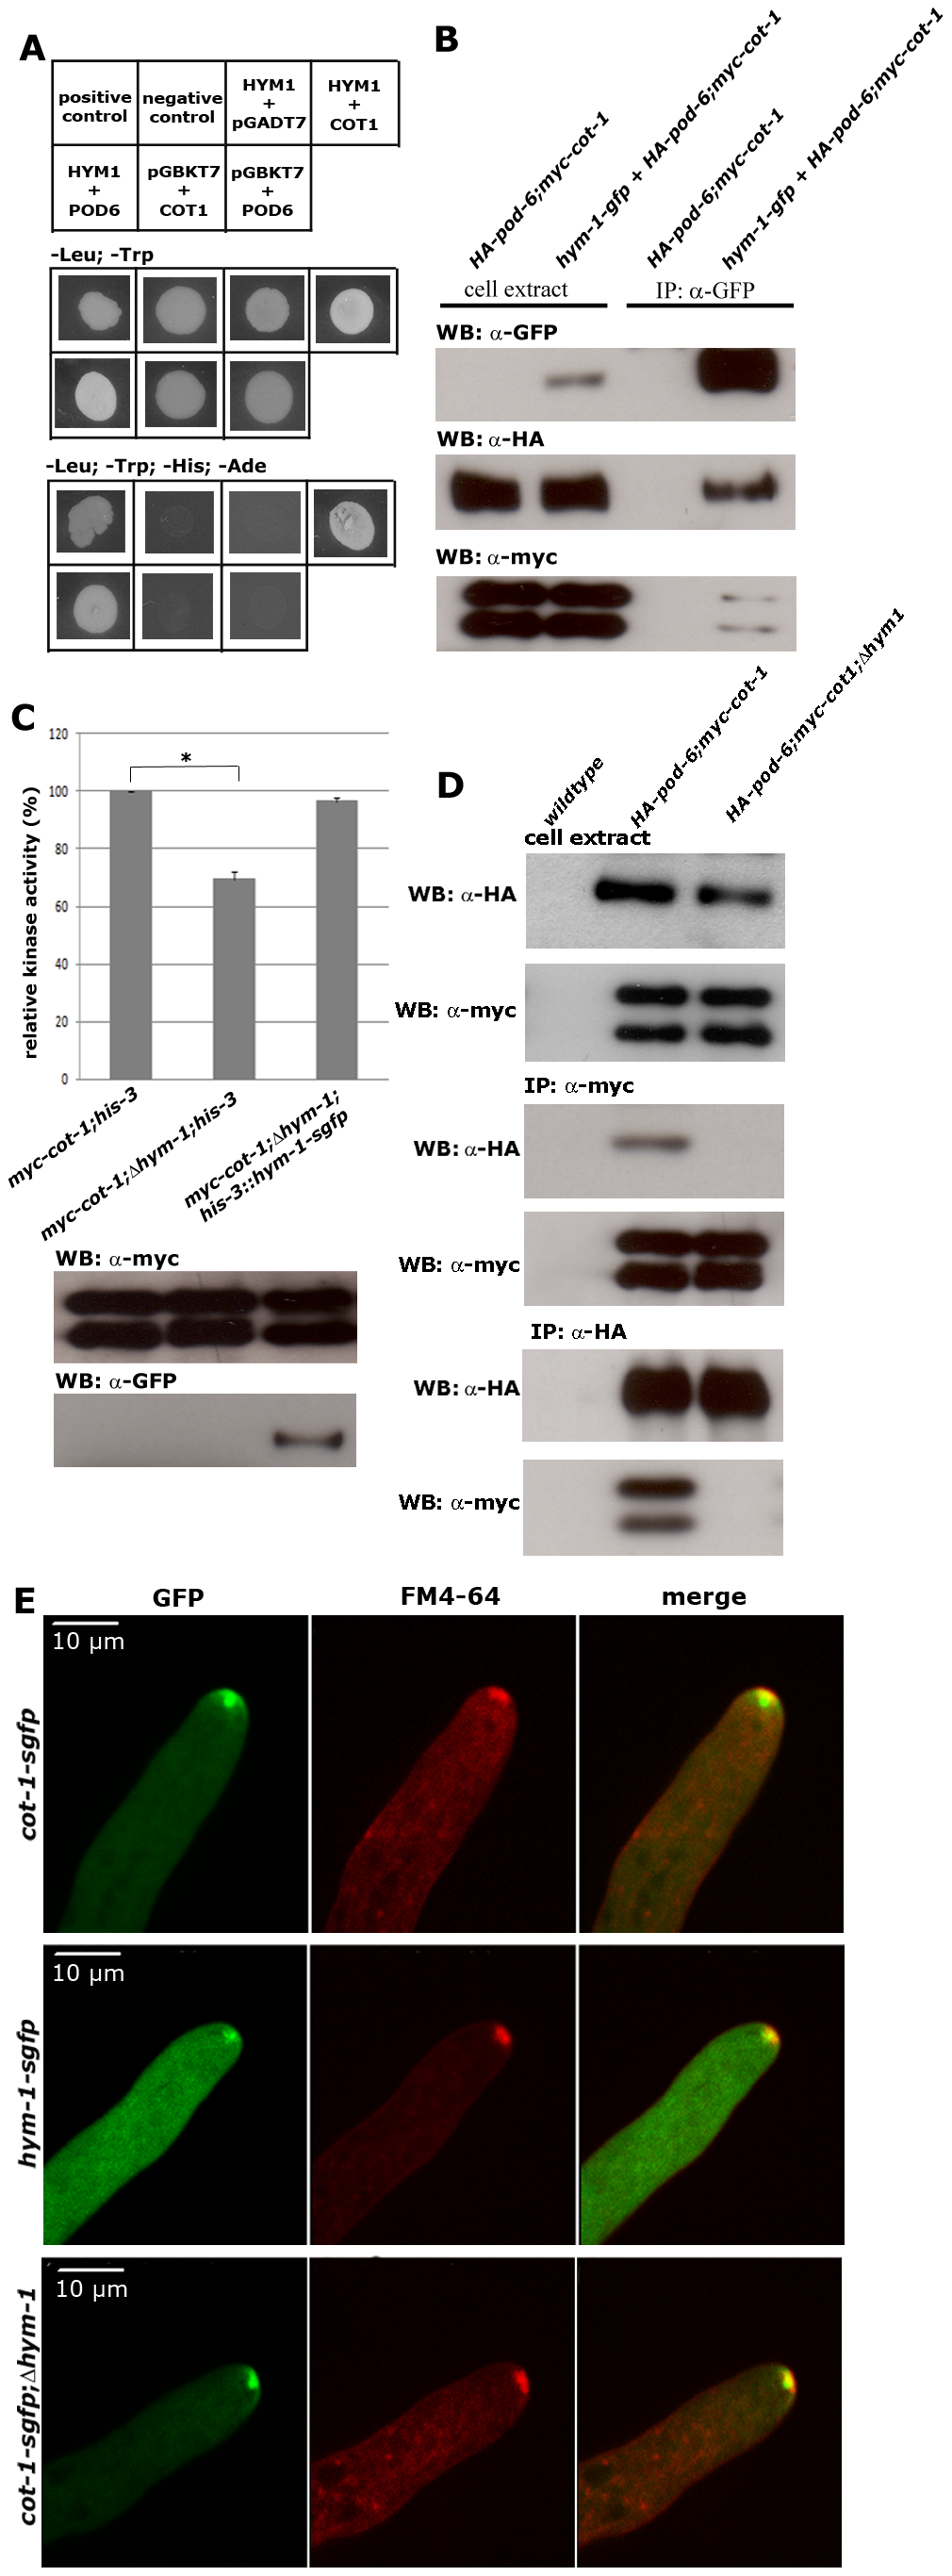 HYM1 functions as scaffold protein for the COT1-POD6 complex.